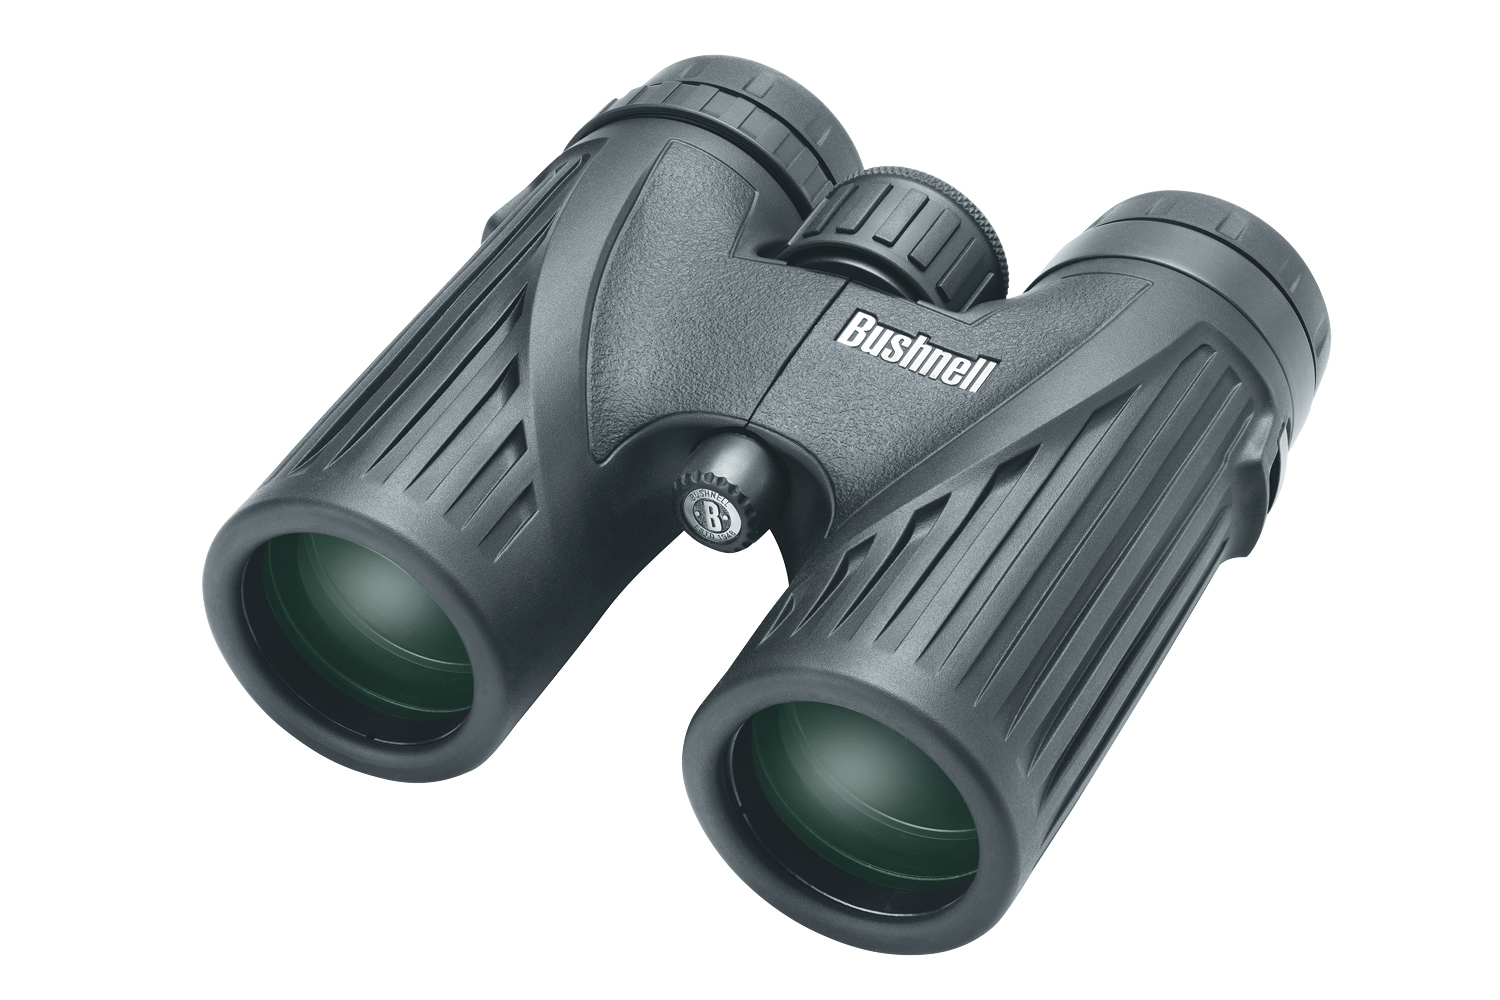 Бинокль Bushnell LEGEND ULTRA-HD 10x36 цена и фото